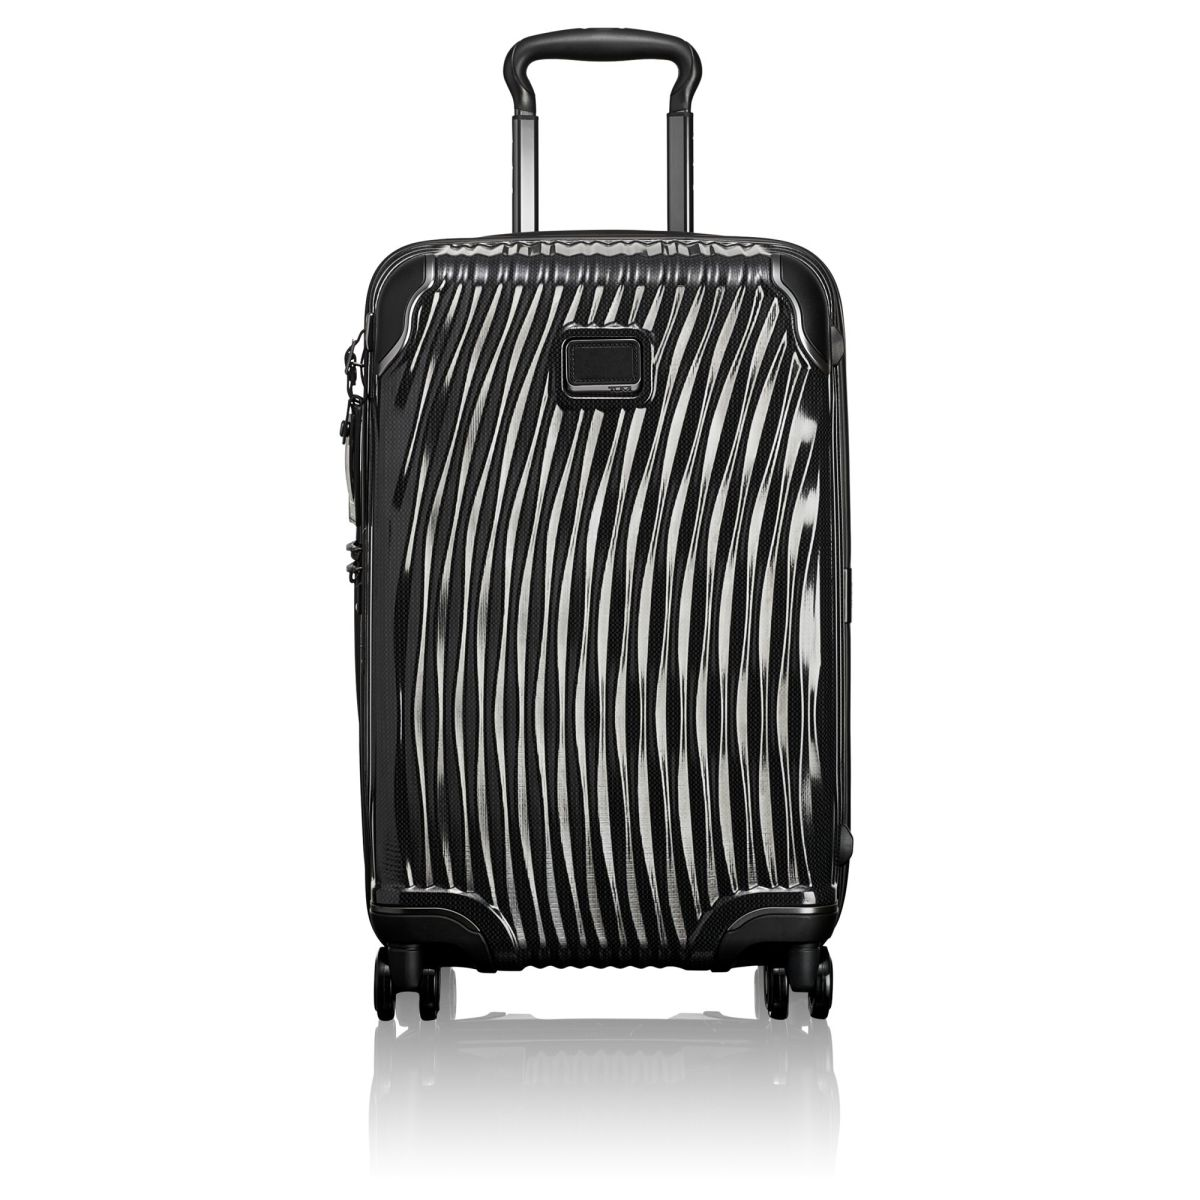 Tumi Releases Their Lightest And Most Rugged Hardshell